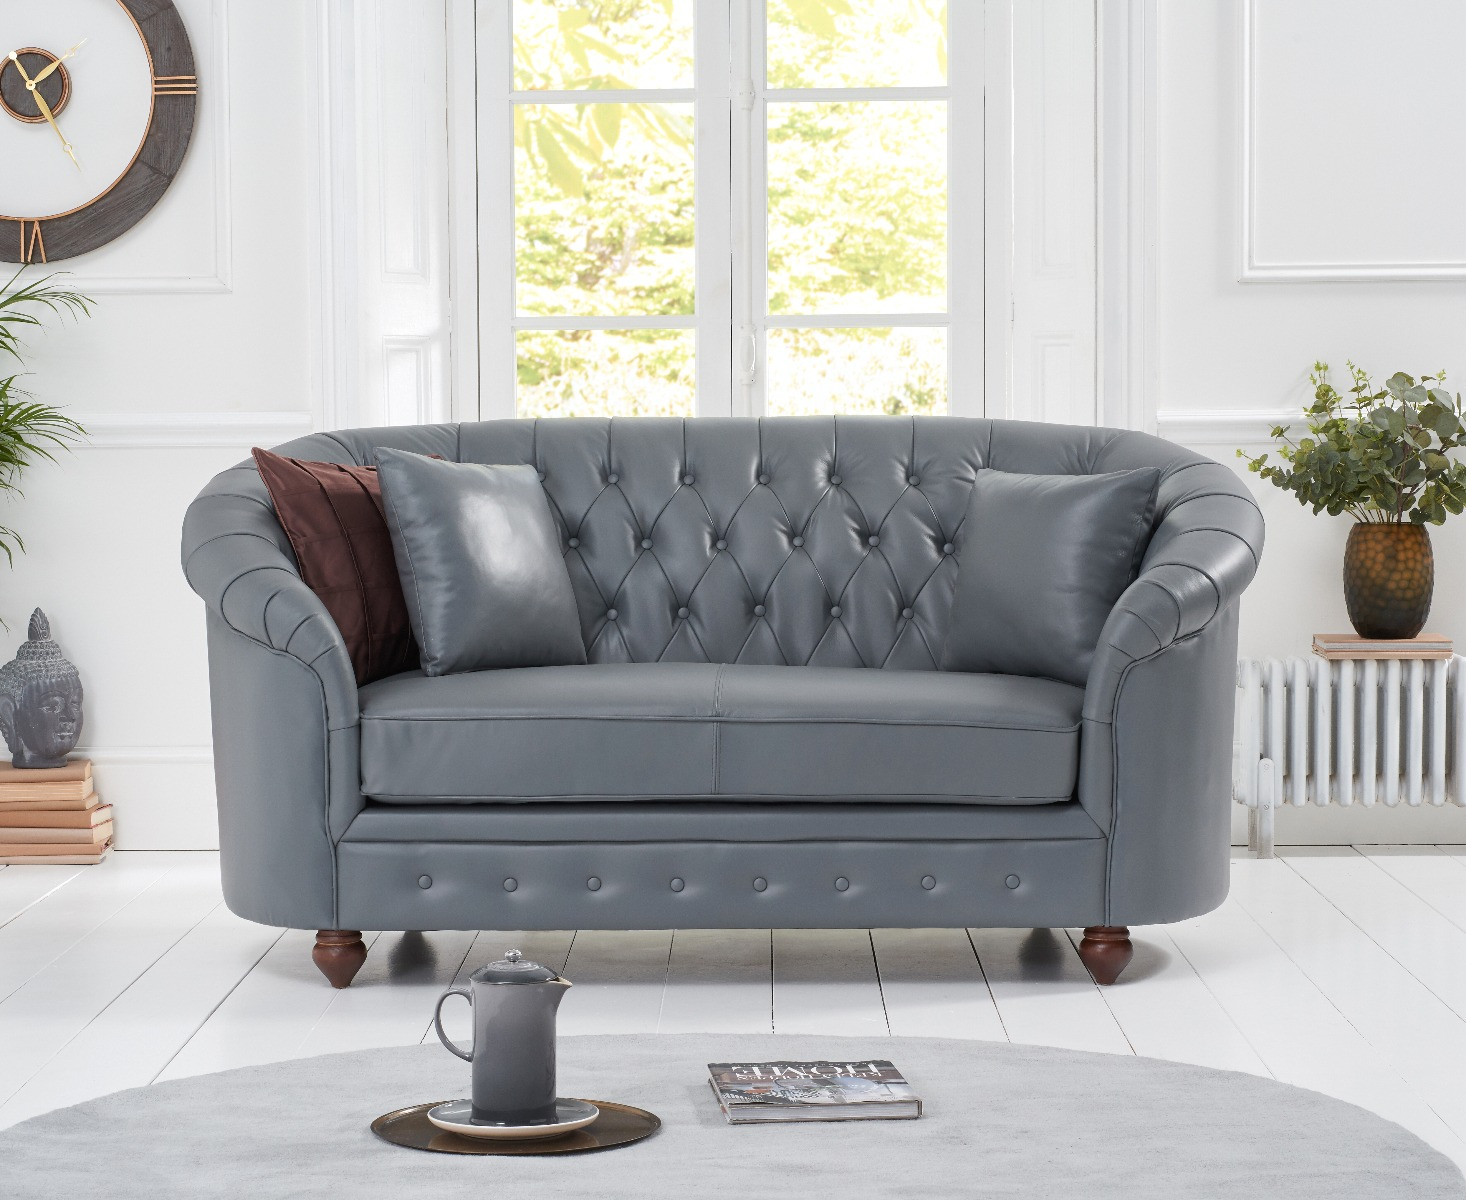 An image of Chloe Grey Leather 2 Seater Sofa